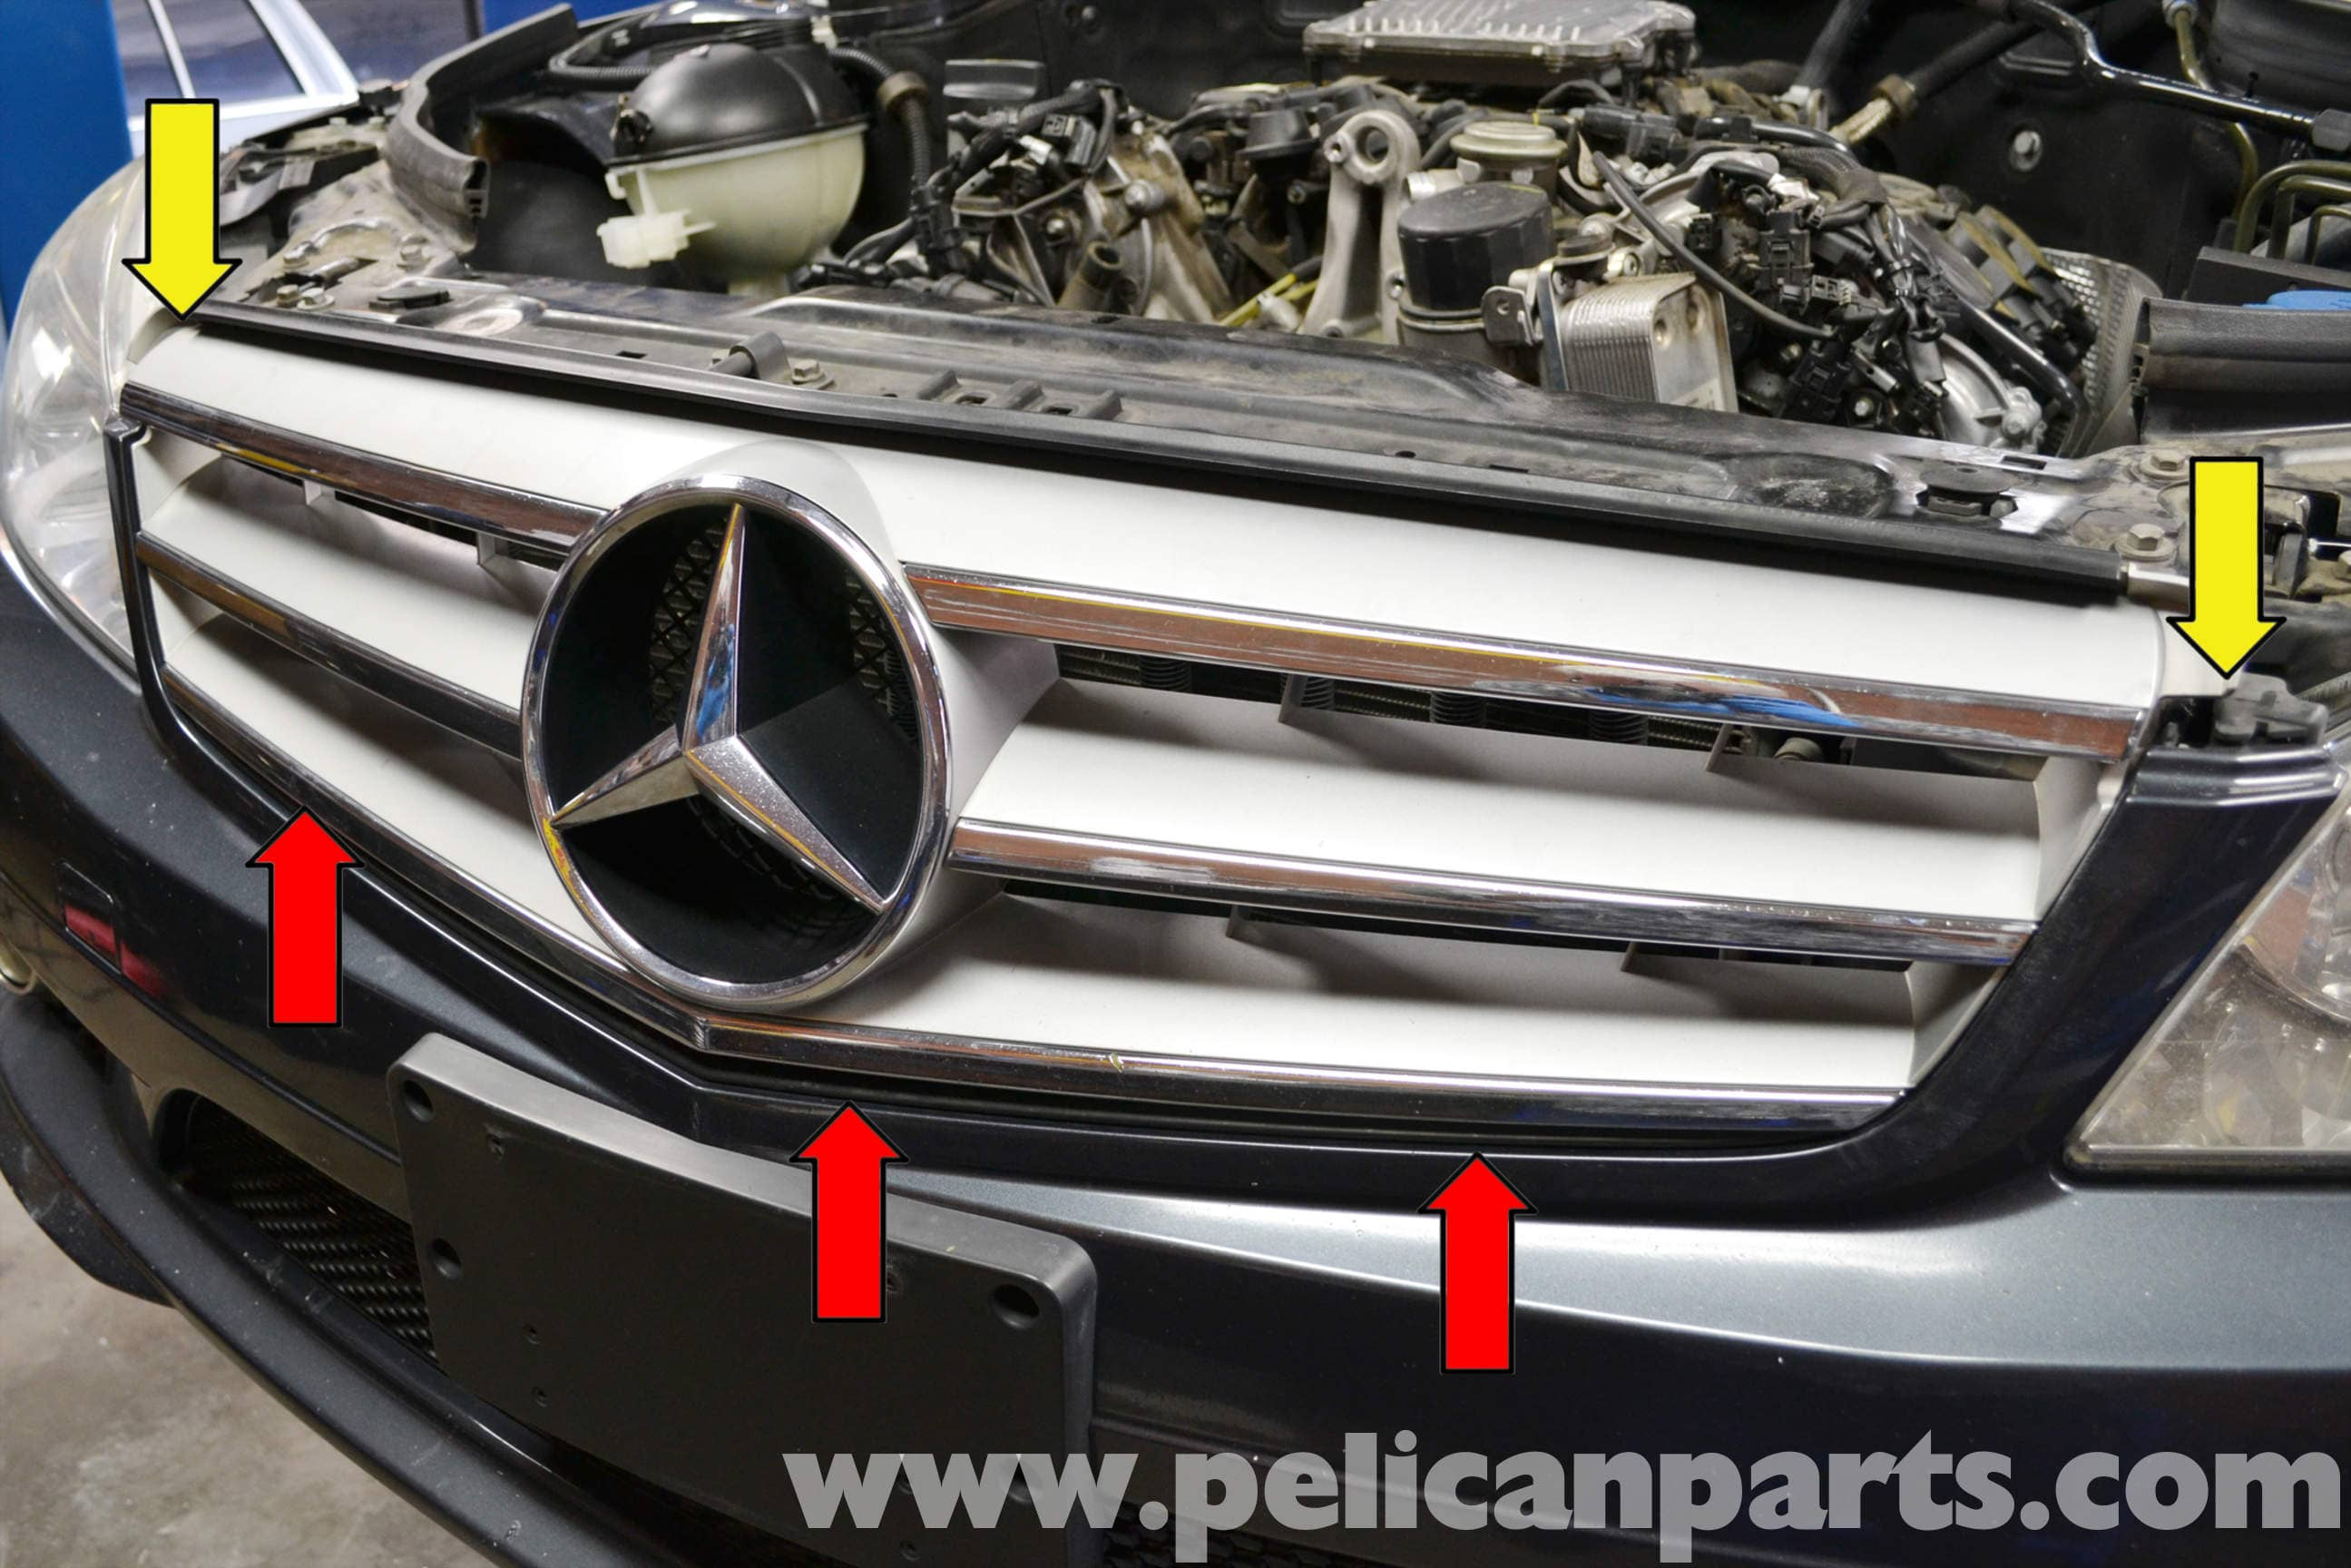 specs information wagon benz amg mercedes pictures wallpaper